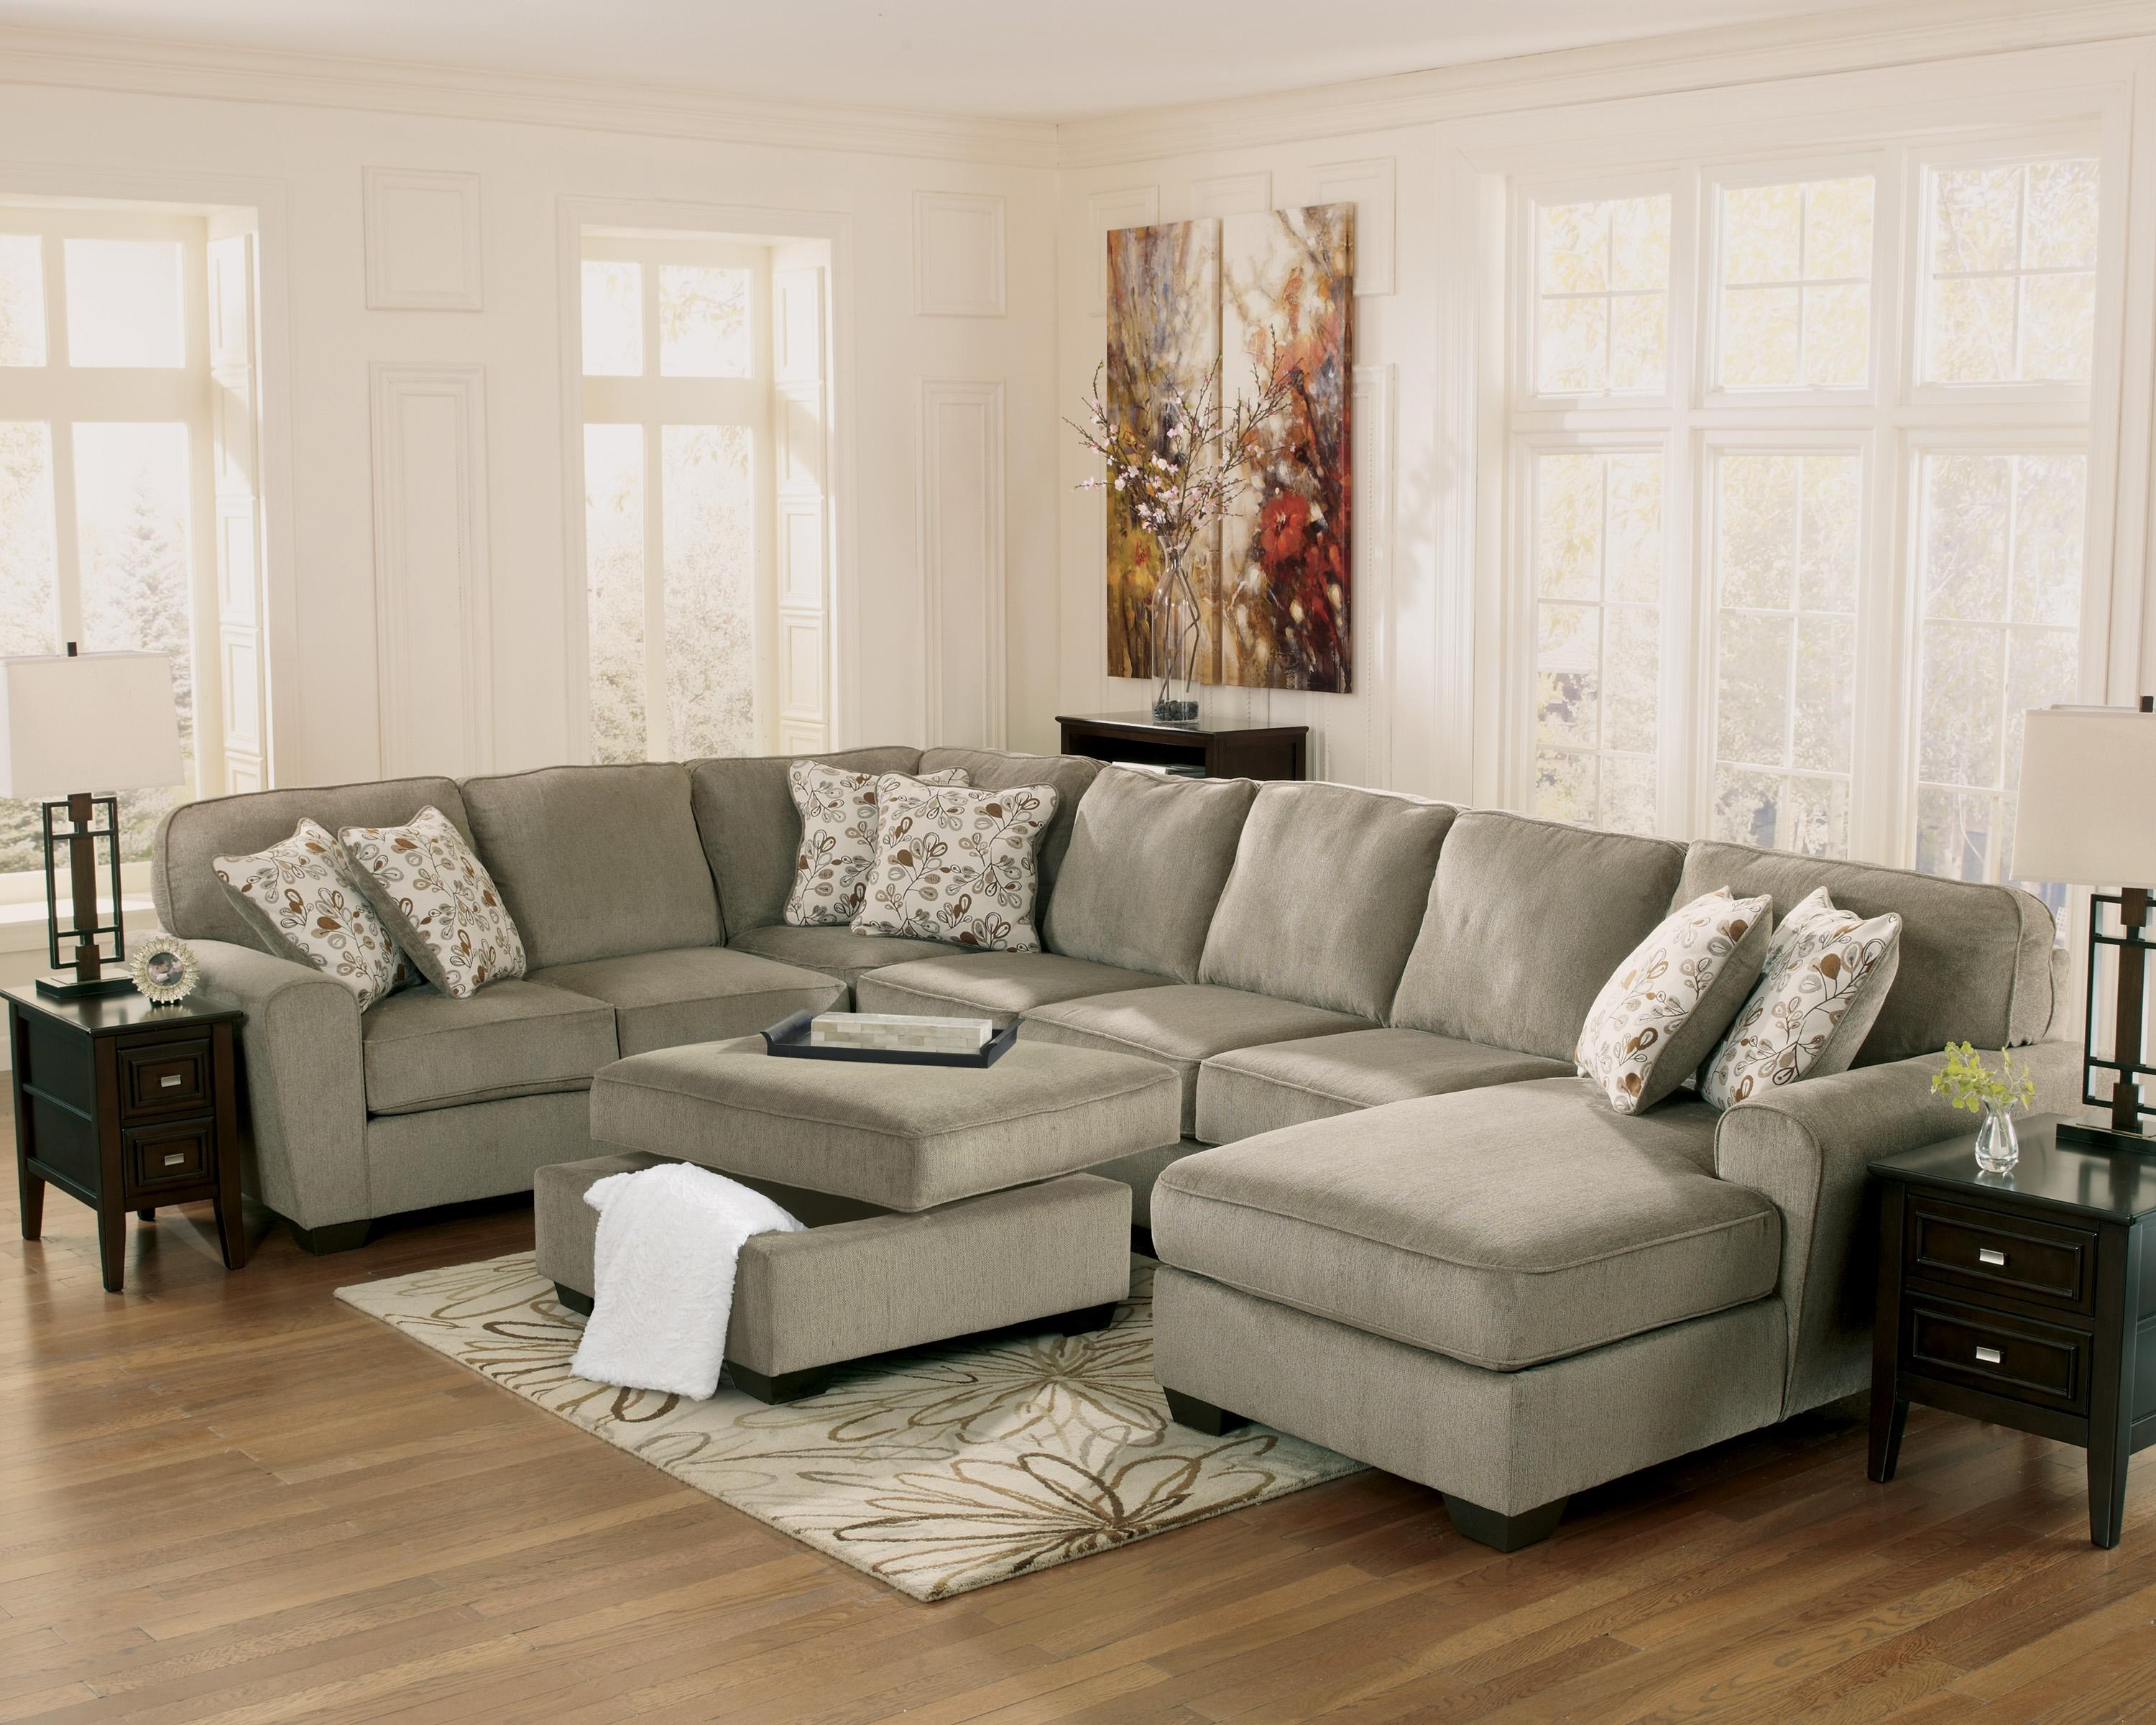 Patola Park - Patina 4-Piece Sectional with Right Chaise by Ashley Furniture : brighton park sectional - Sectionals, Sofas & Couches